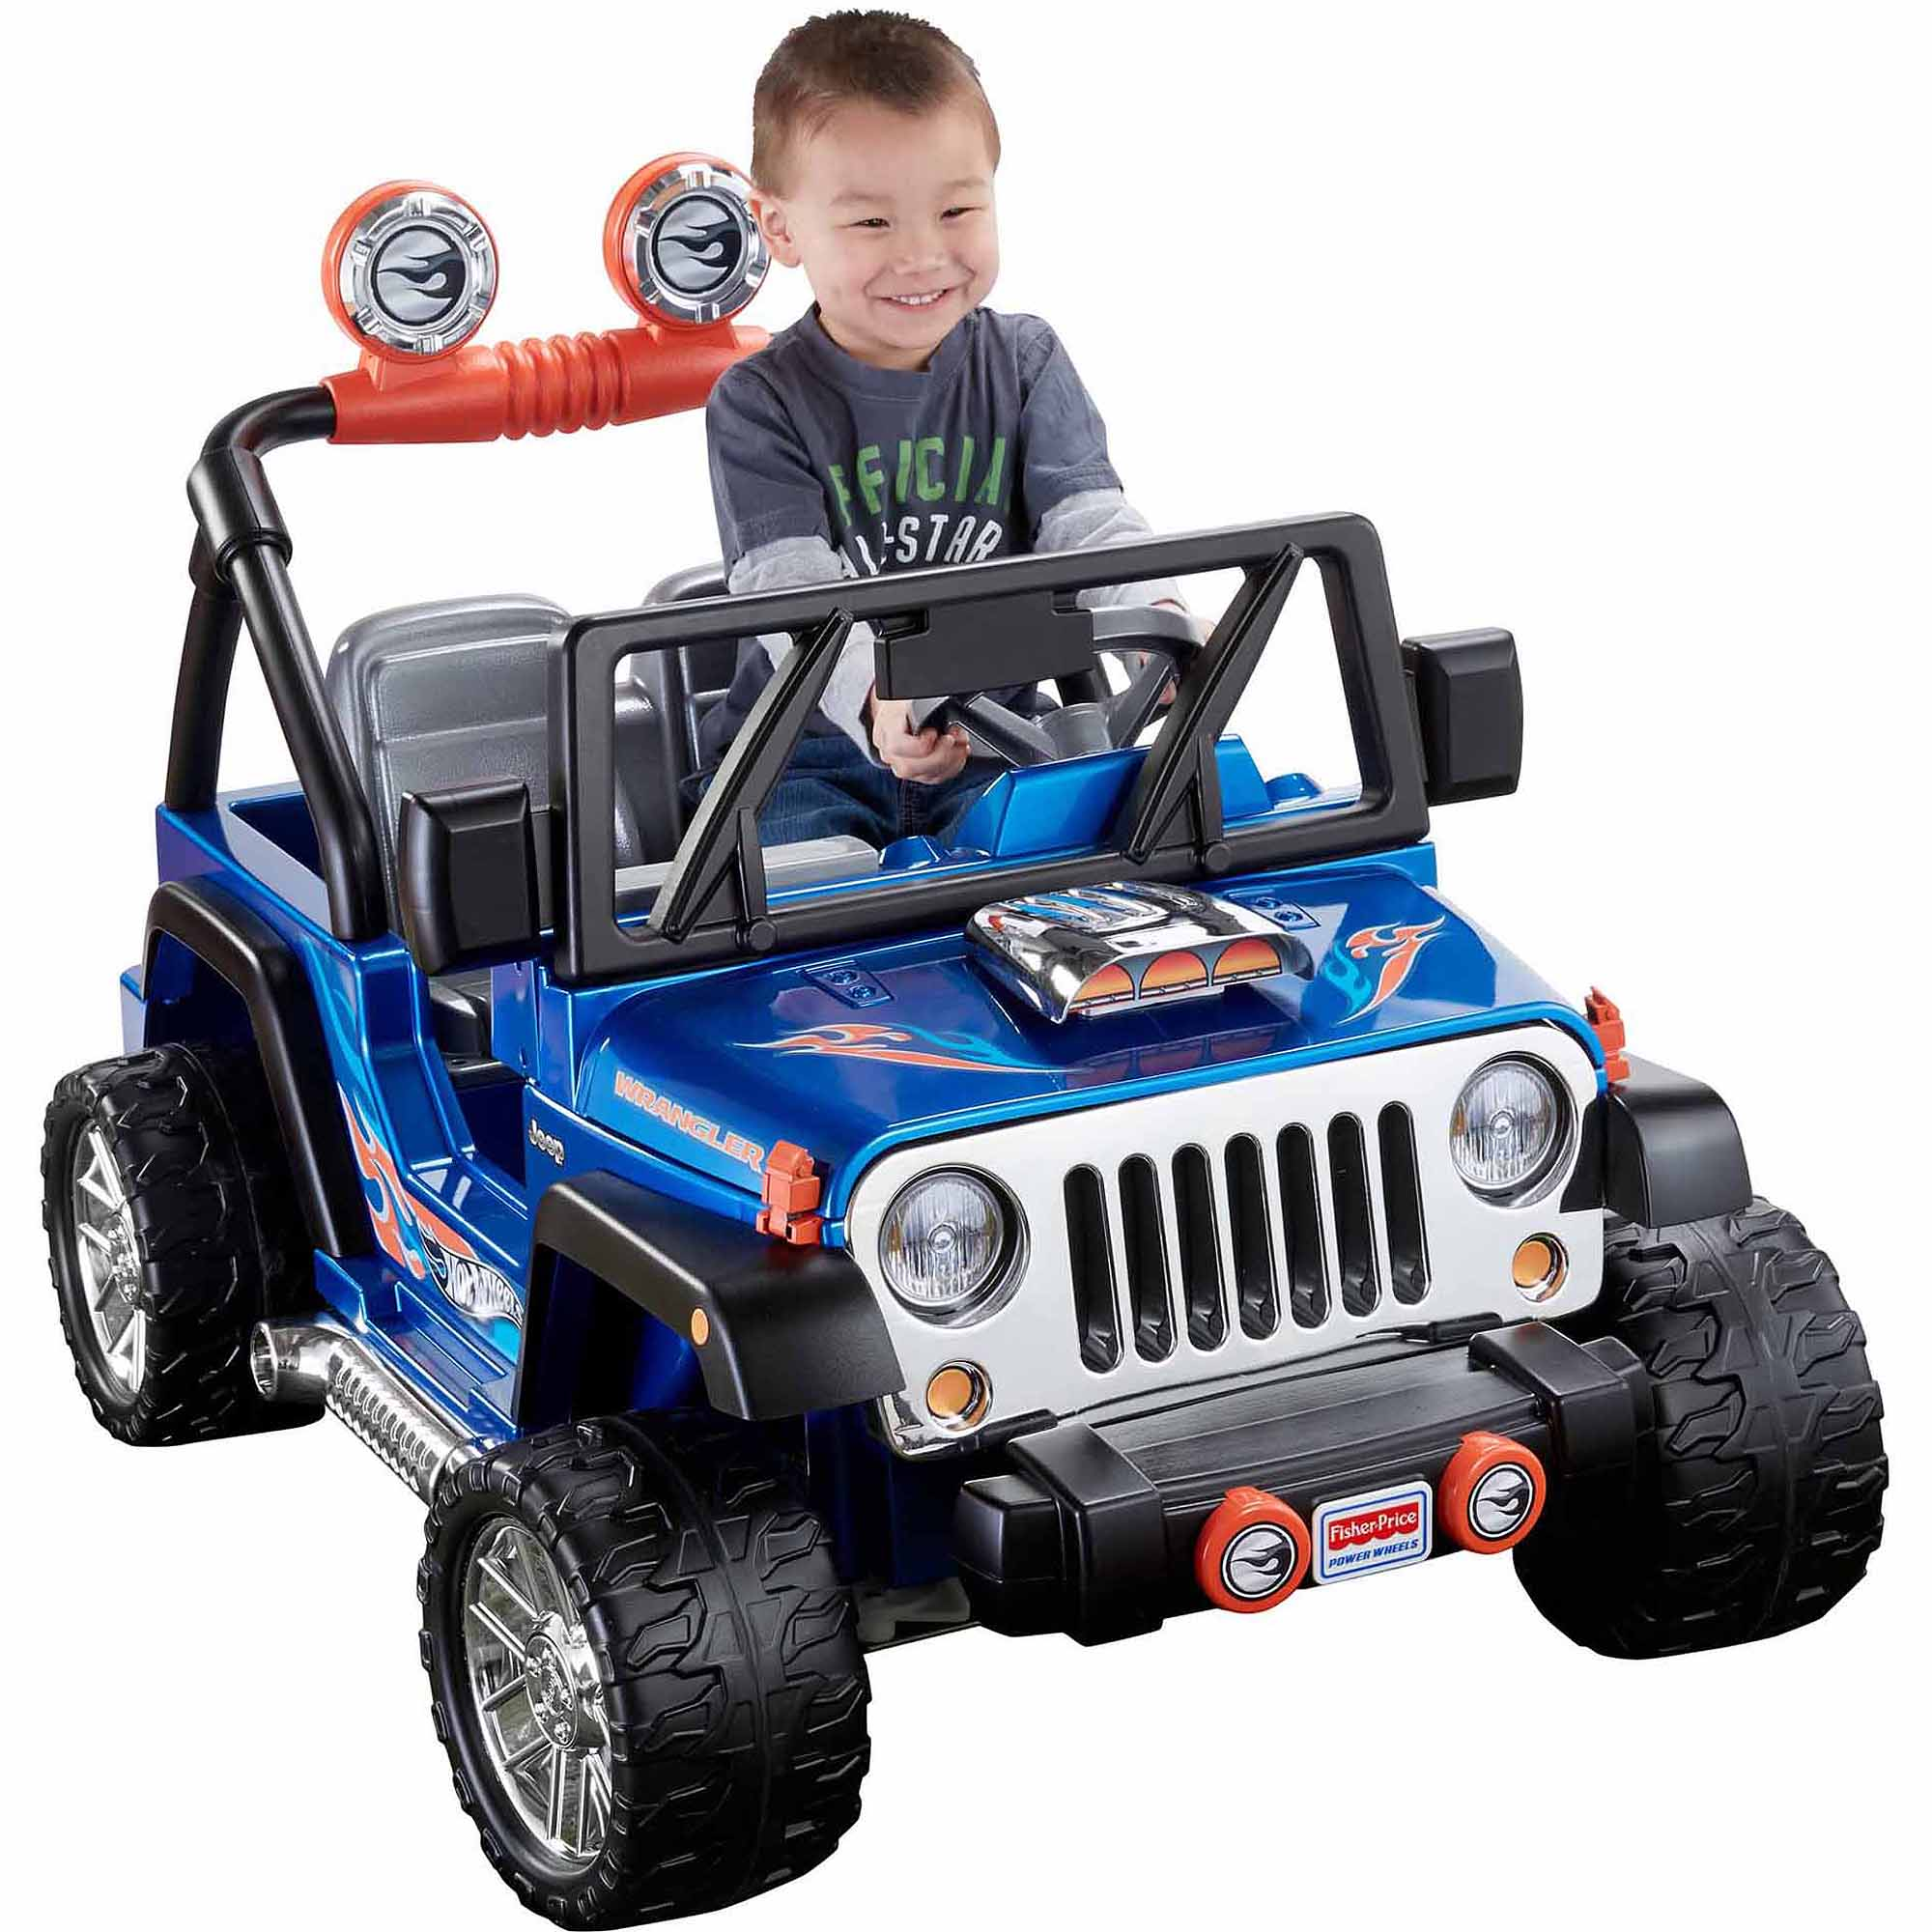 Fisher-Price Power Wheels Hot Wheels Jeep Wrangler 12-Volt Battery-Powered Ride-On, Blue